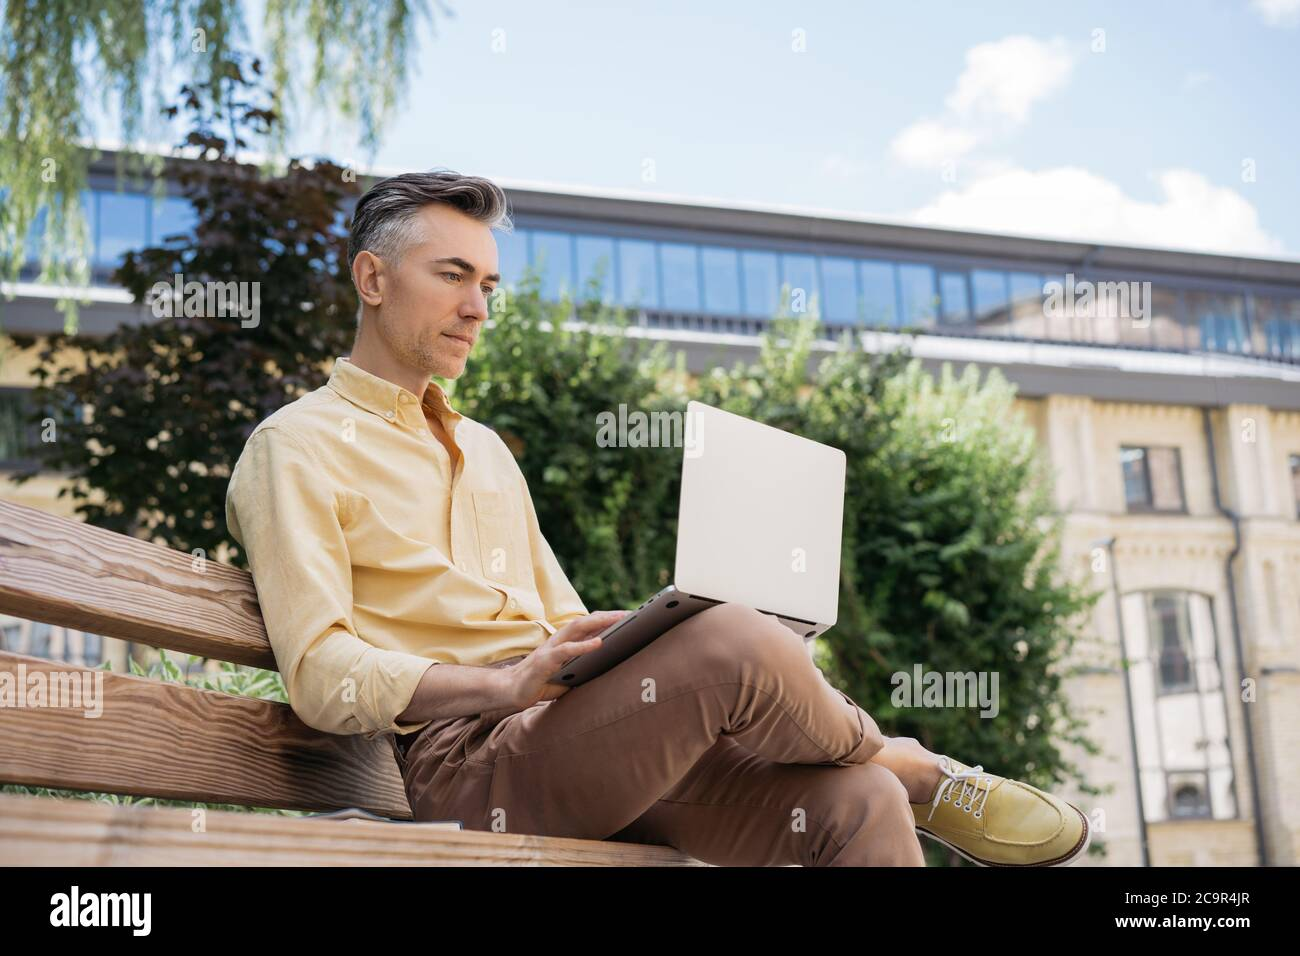 Serious mature businessman using laptop computer, planning start up, brainstorming, sitting outdoors. Busy freelancer working in park Stock Photo